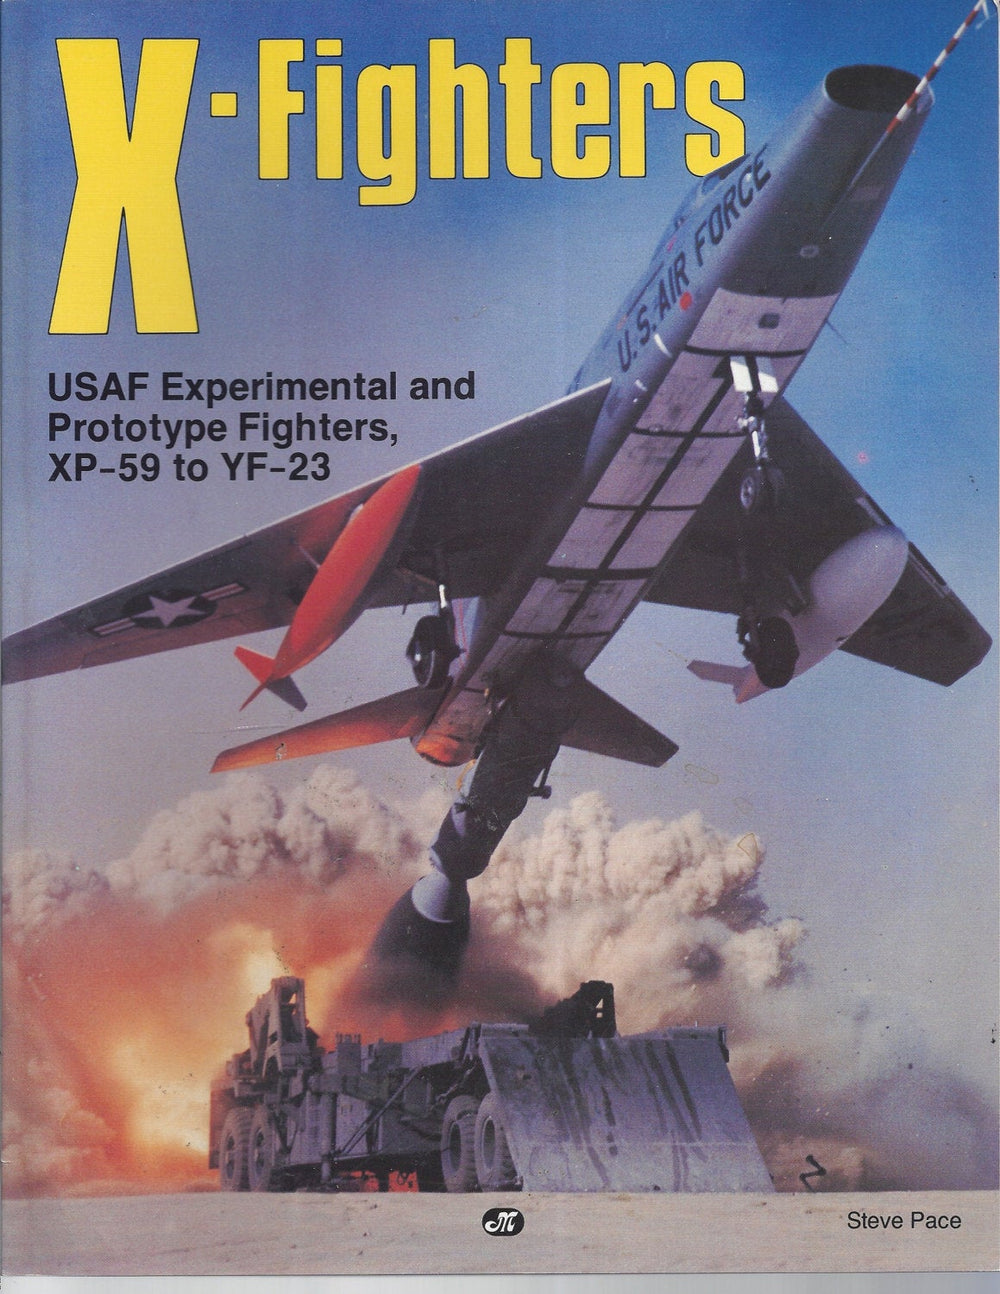 X-Fighters: Experimental and Prototype USAF Jet Fighters, XP-59 to YF-23 by Steve Pace (Paperback)